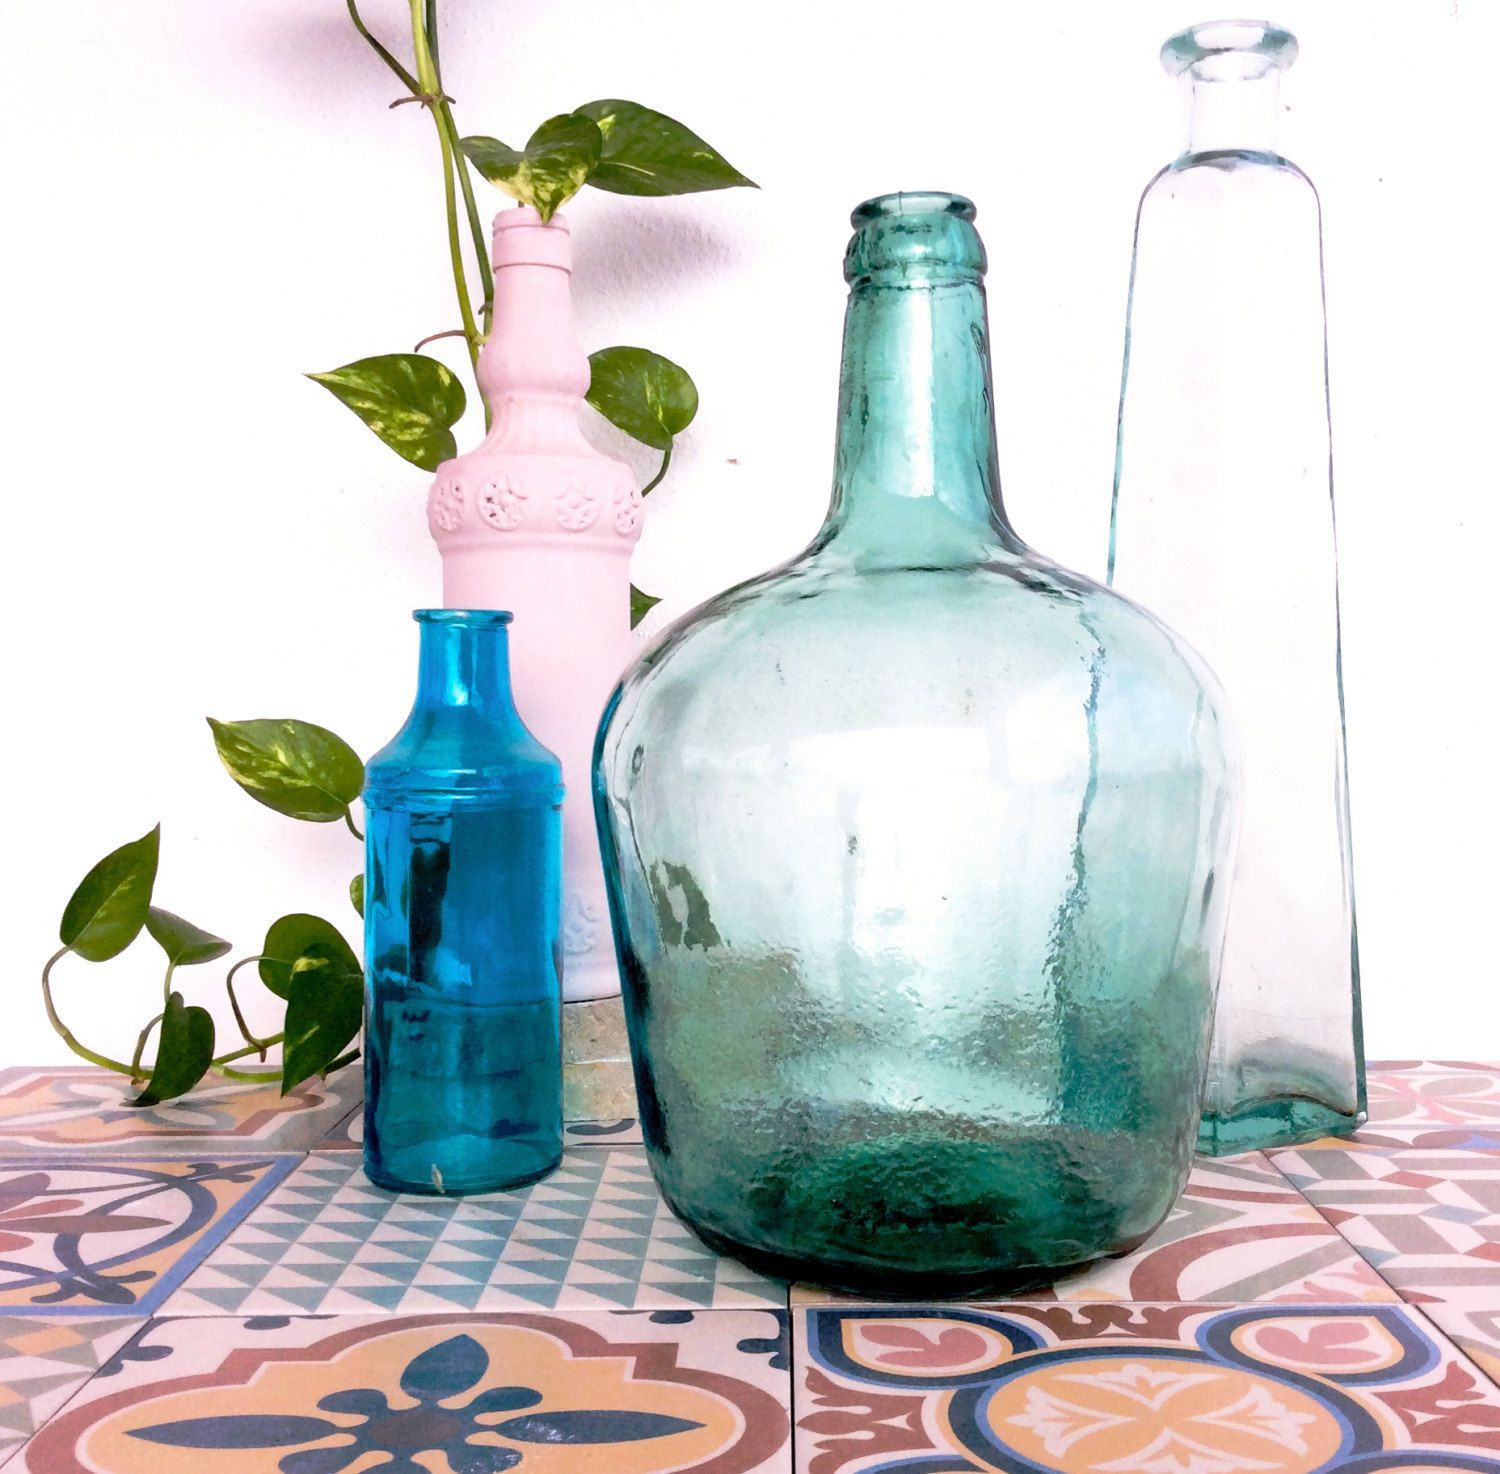 Vintage Milk Bottle Vases Of 35 Antique Green Glass Vases the Weekly World In Vintage Viresa Demijohn Green Glass Bottle From Spain by Noaparis